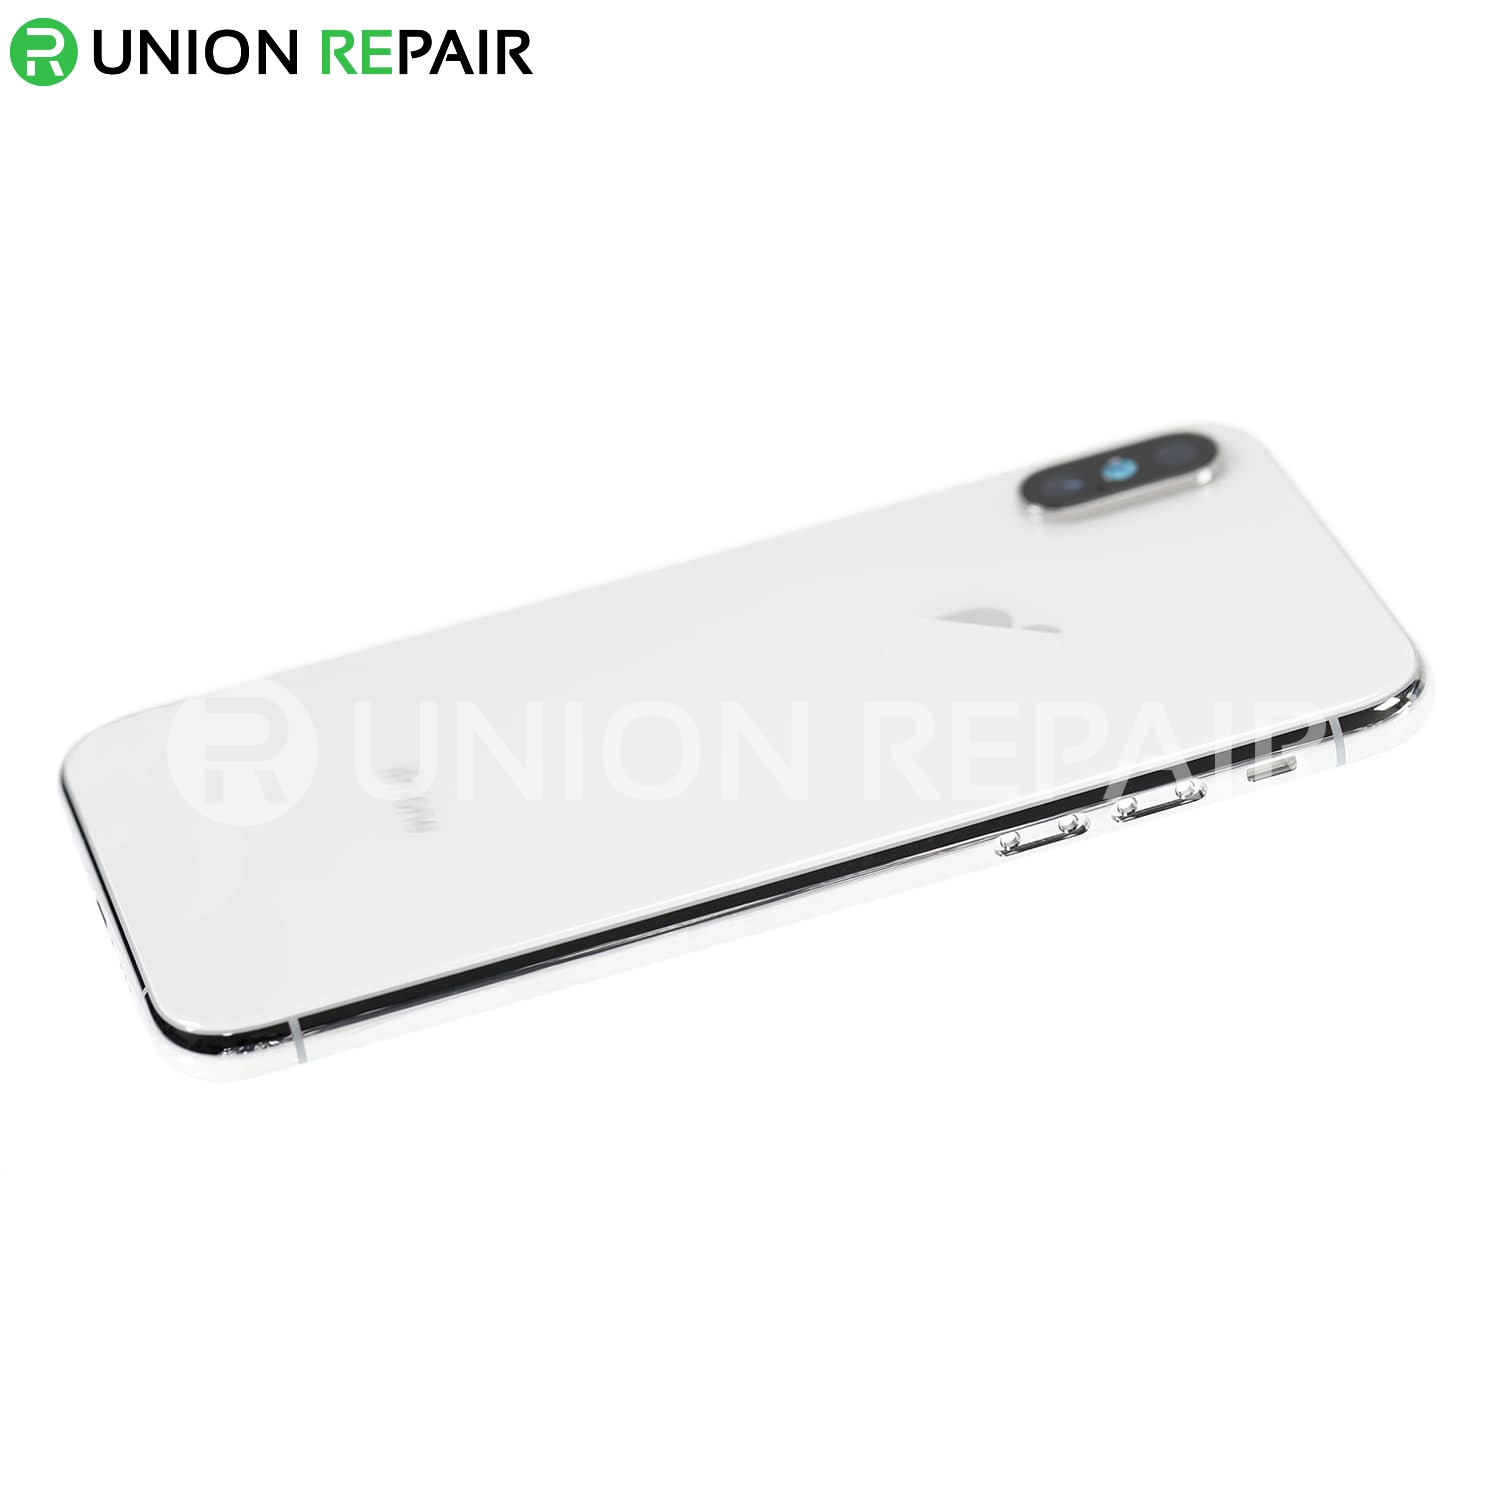 Replacement for iPhone Xs Rear Housing with Frame - Silver